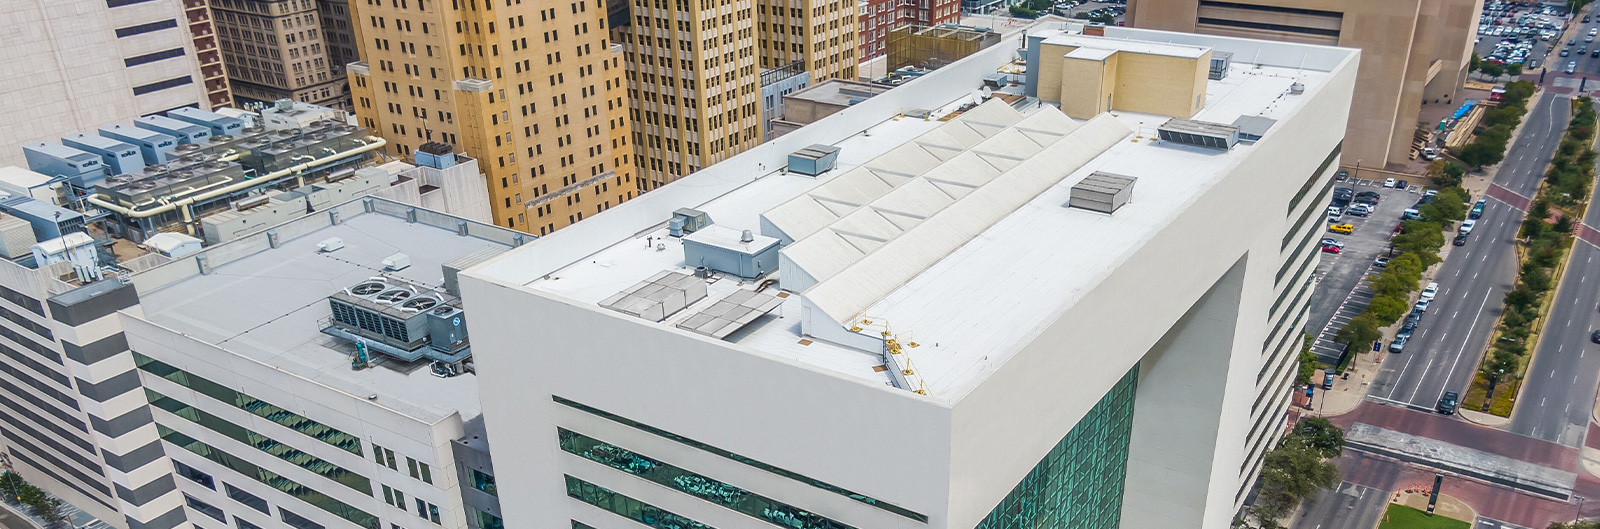 Award Winning Commercial Roofing Projects